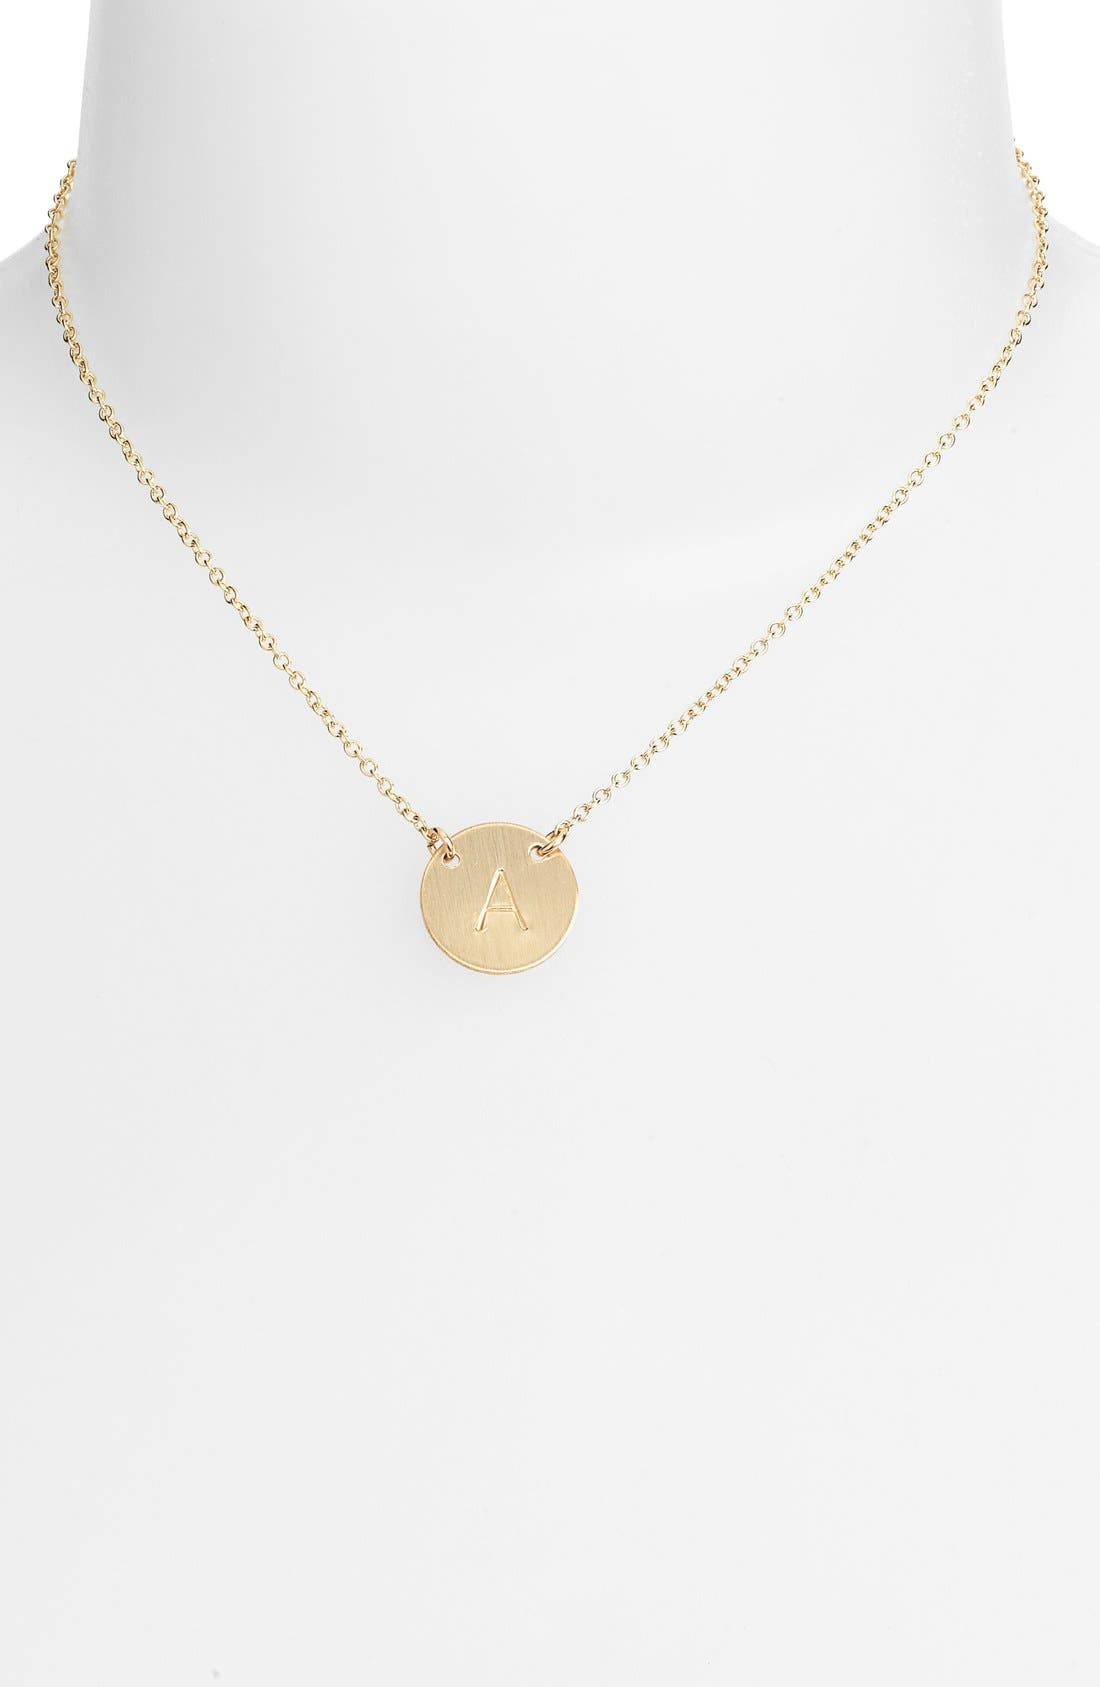 14k-Gold Fill Anchored Initial Disc Necklace,                             Alternate thumbnail 2, color,                             14K GOLD FILL A